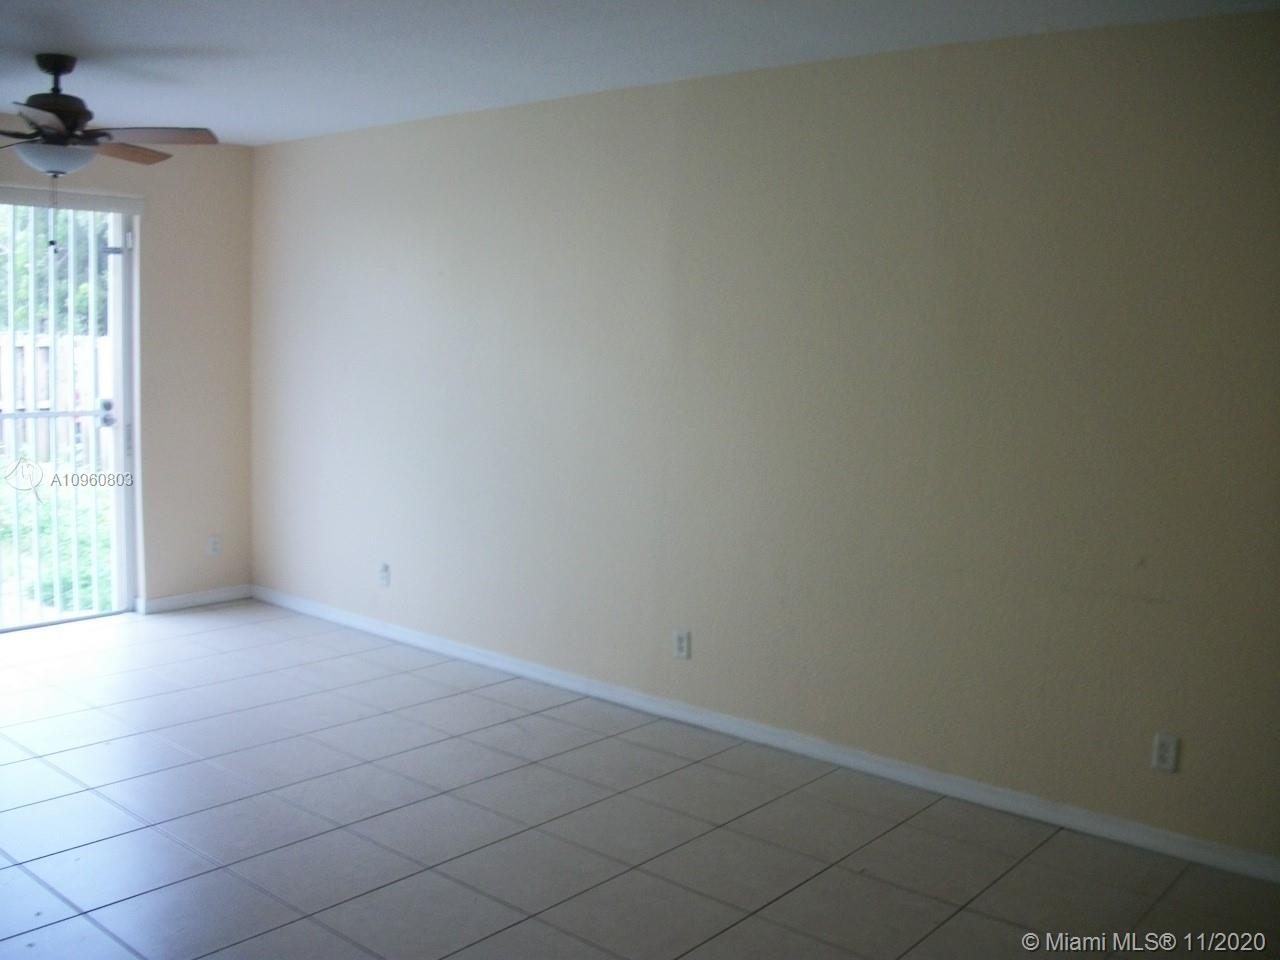 1489 SW 1 ST, Homestead, Florida 33030, 4 Bedrooms Bedrooms, ,3 BathroomsBathrooms,Residential Lease,For Rent,1489 SW 1 ST,A10960803